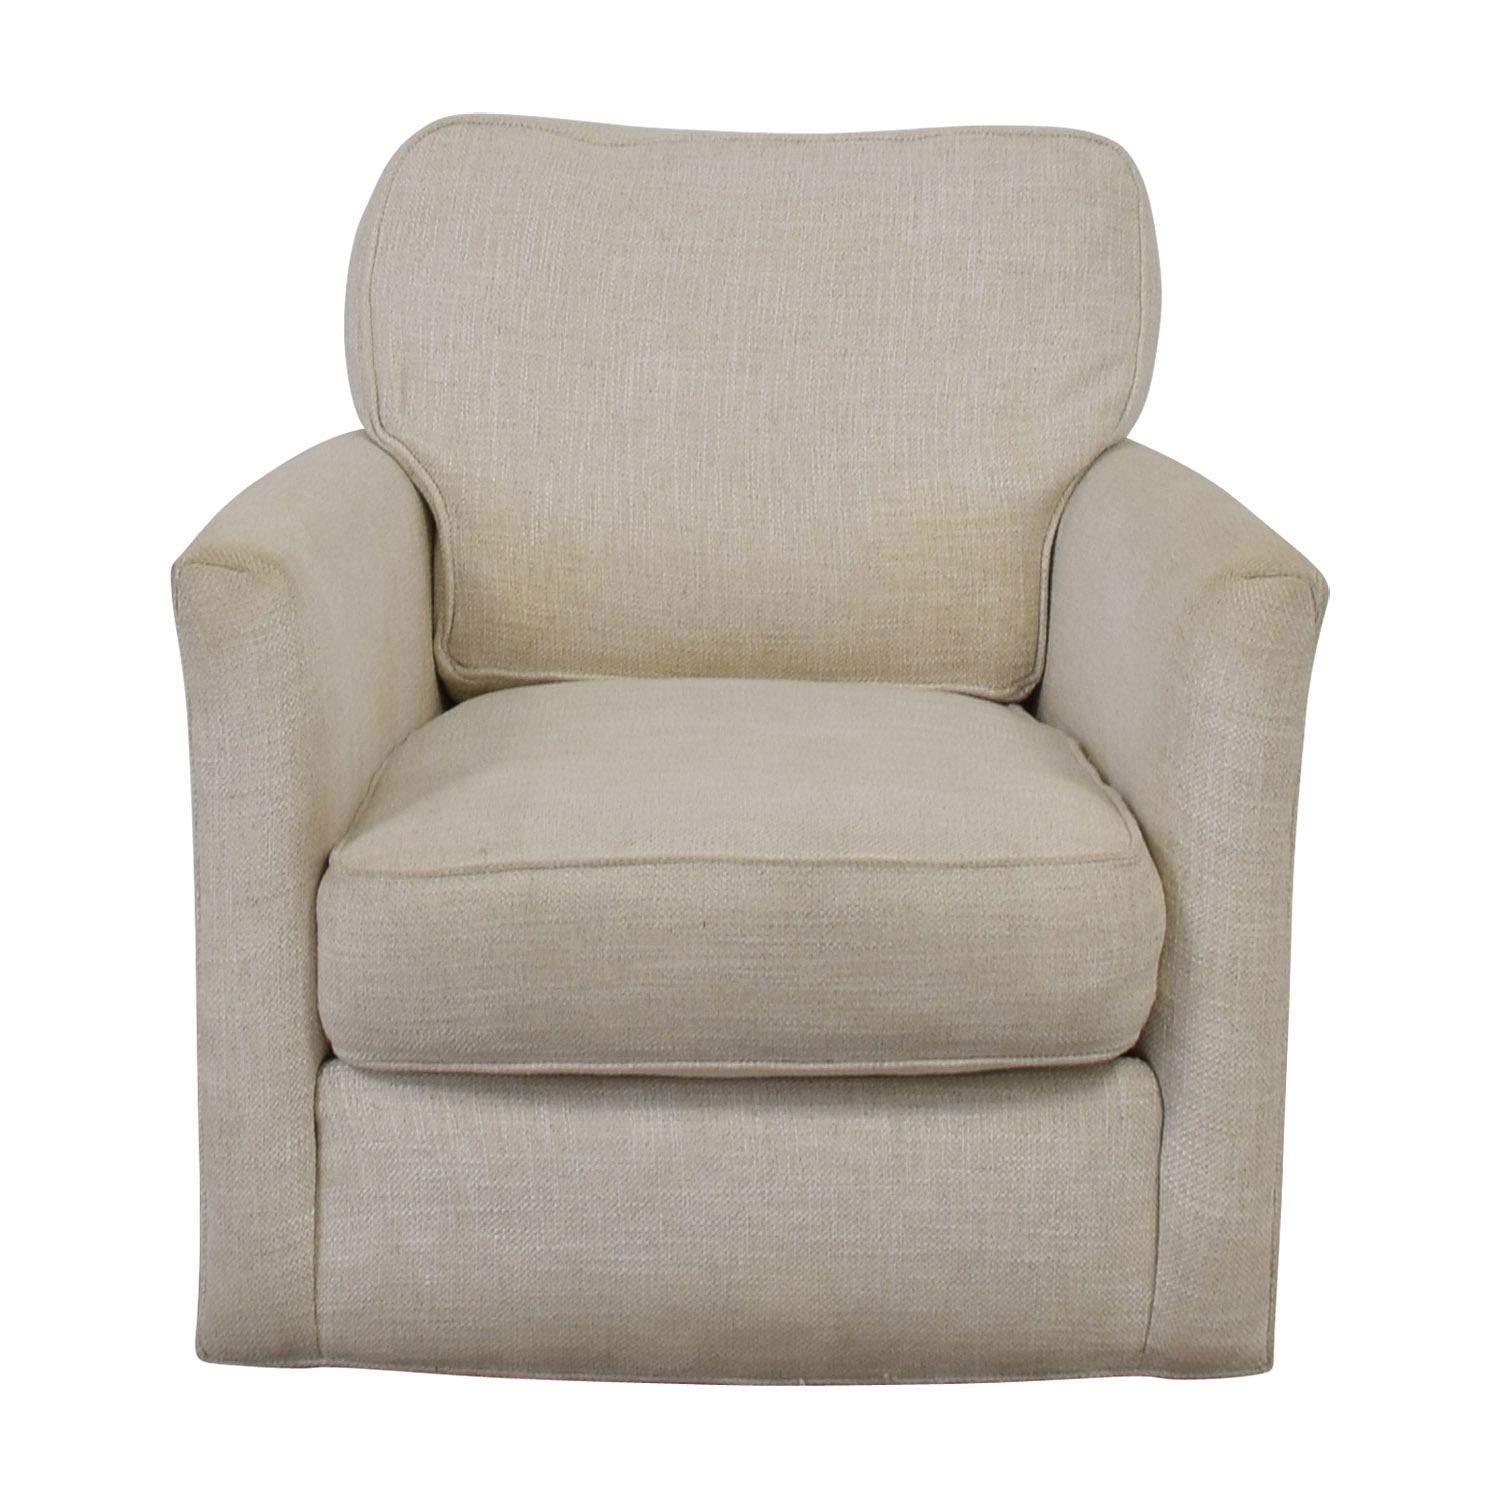 Crate & Barrel Crate & Barrel Talia White Swivel Chair discount